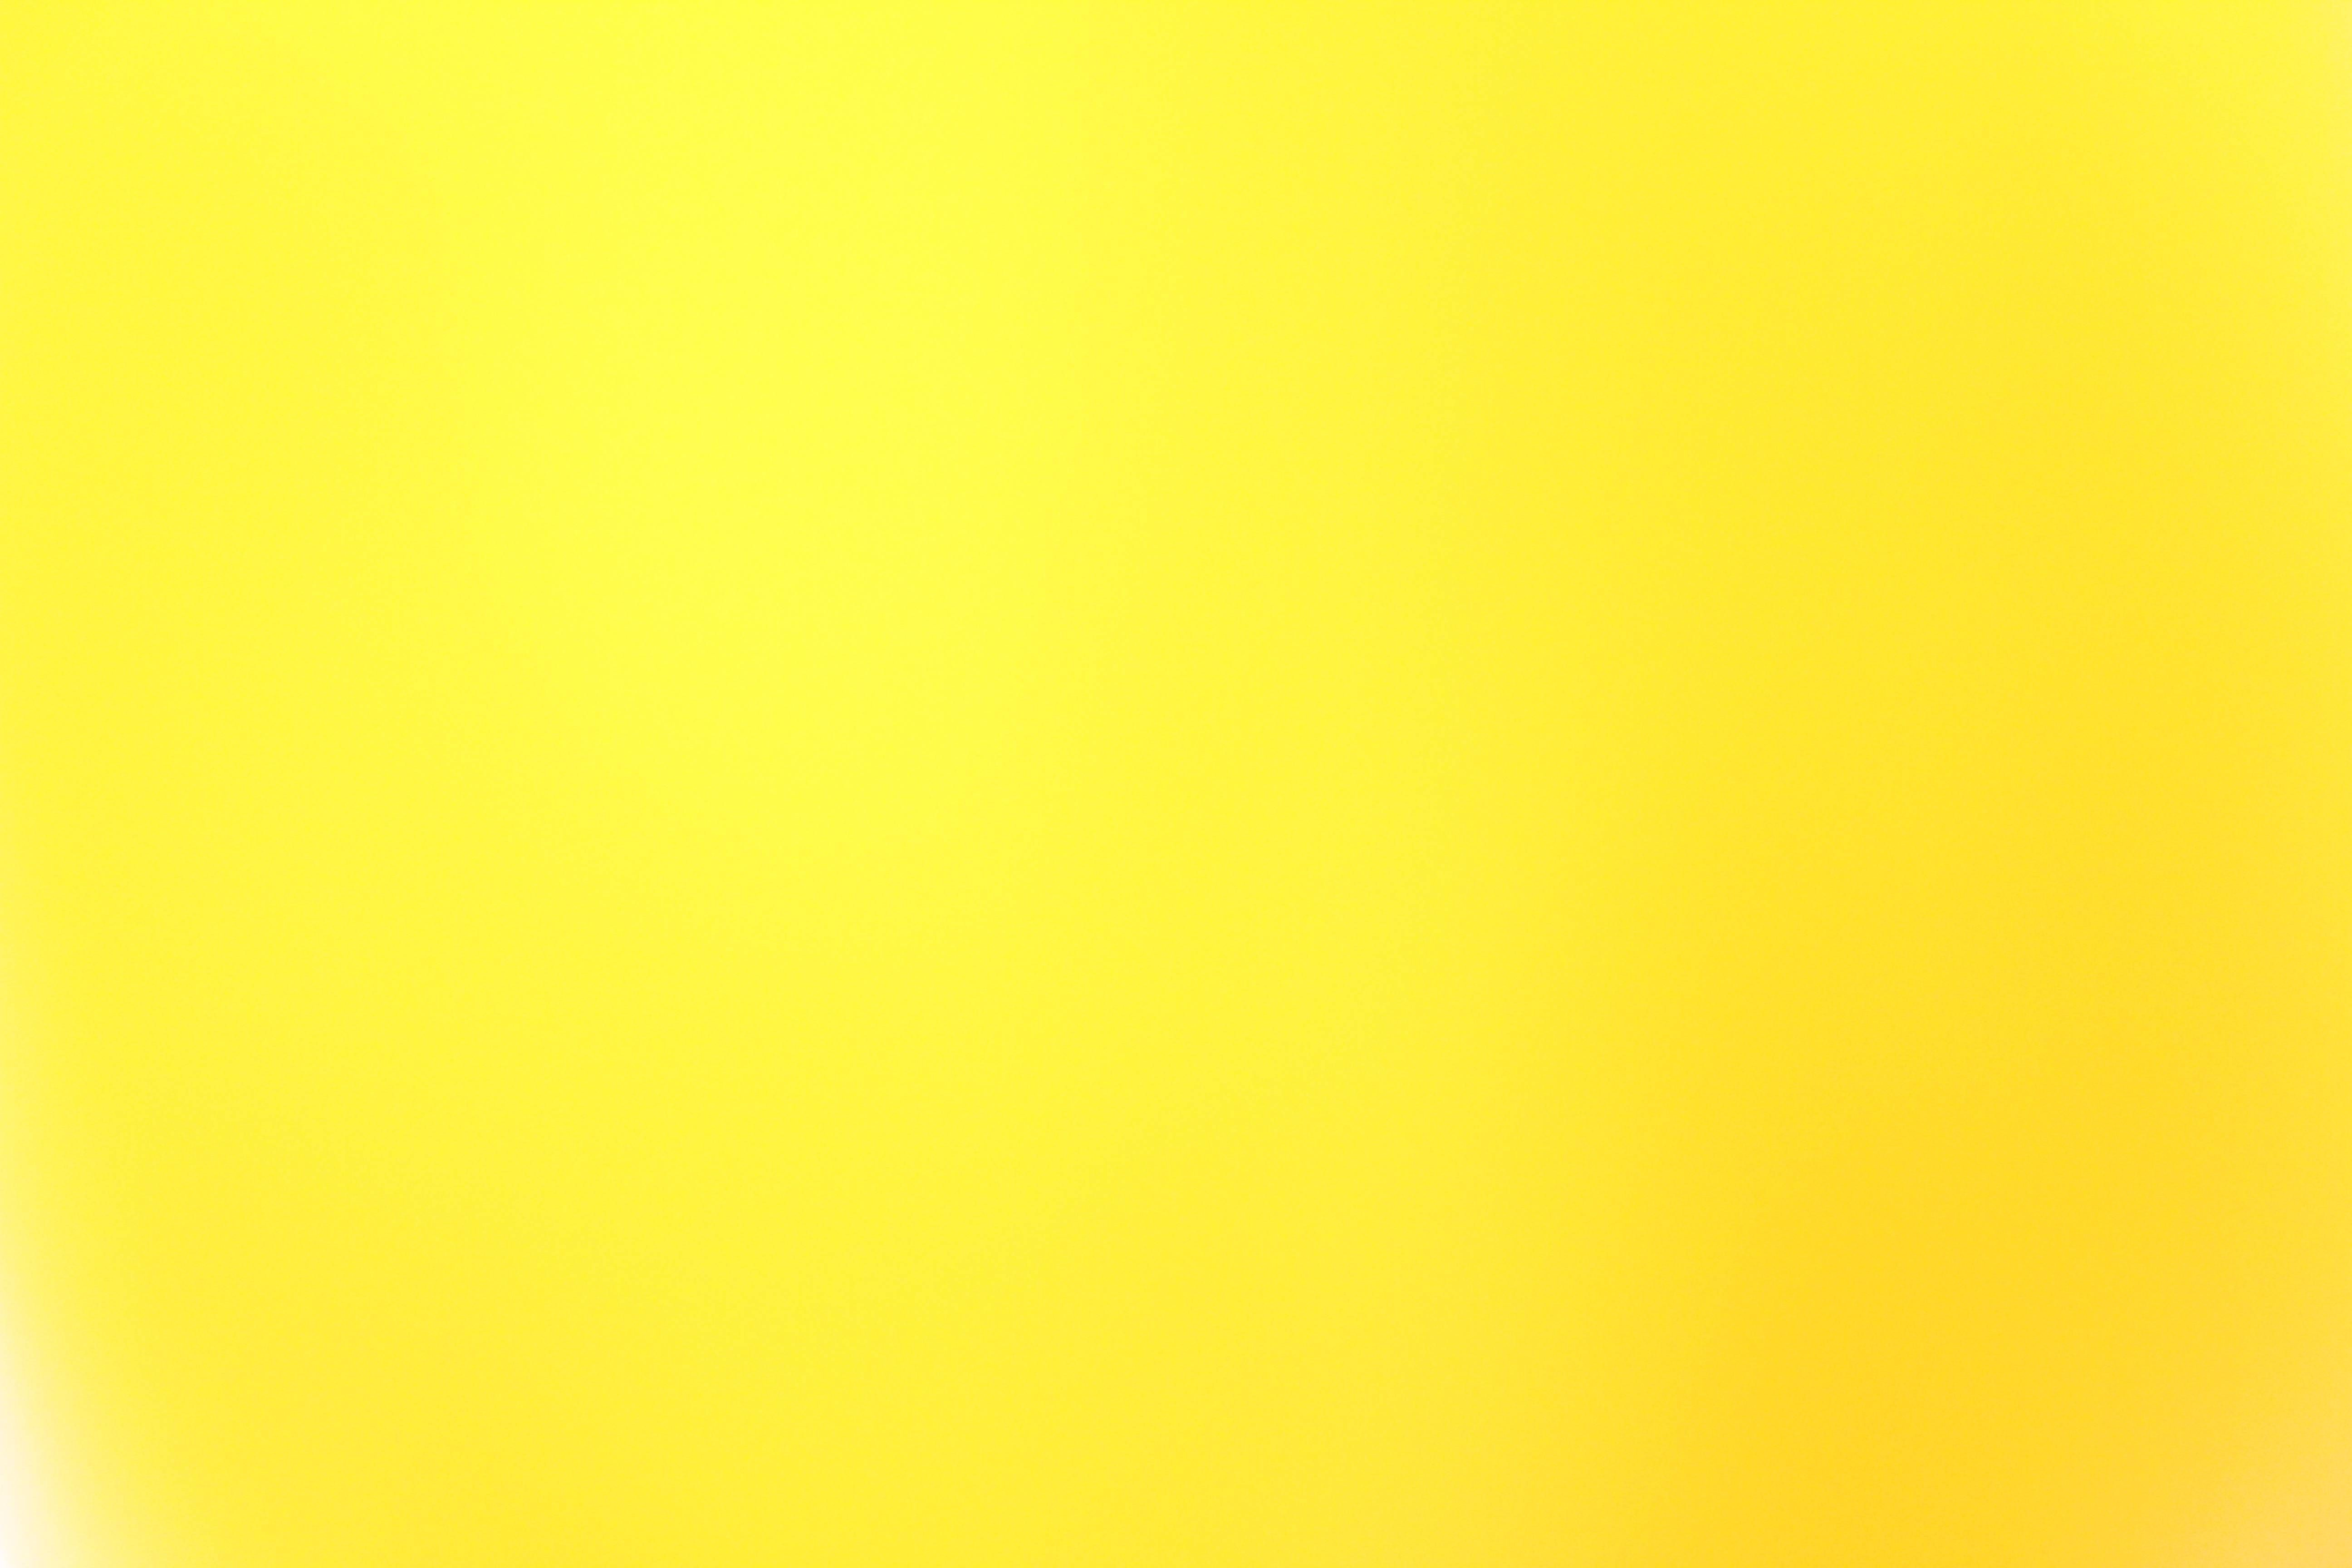 Yellow Background Vectors Photos and PSD files Free Download ...